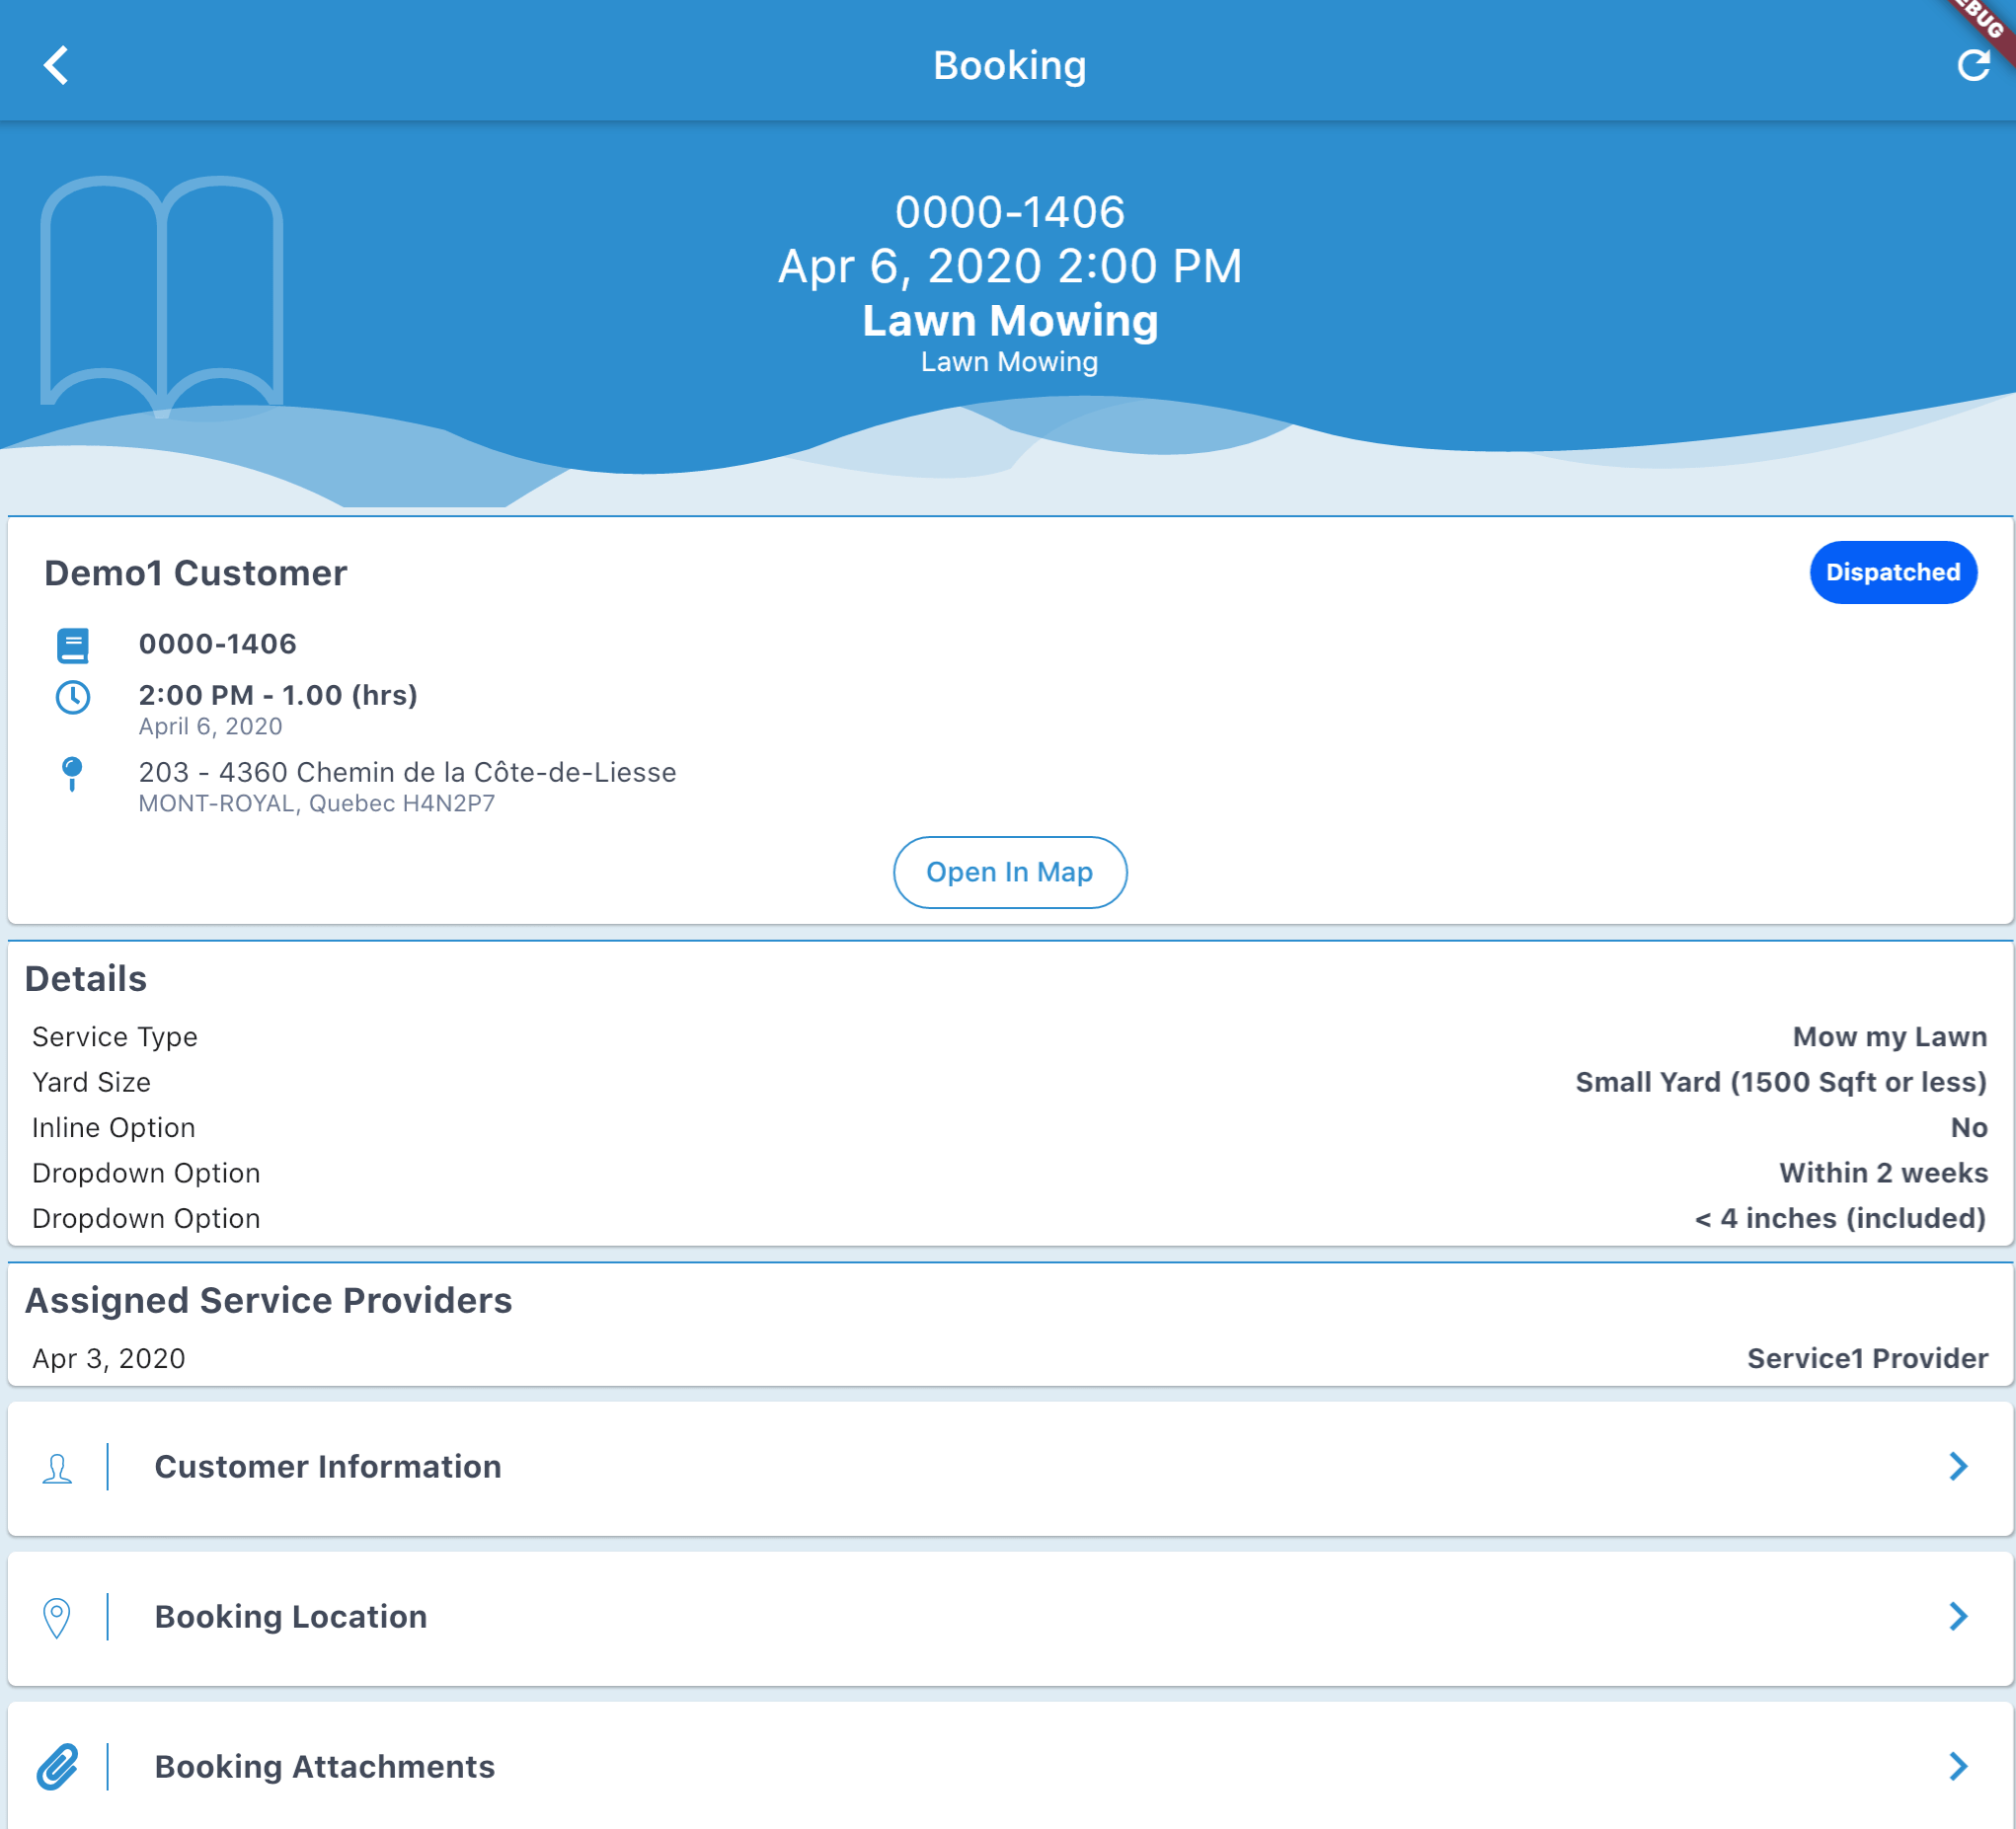 Mobile App - Booking information